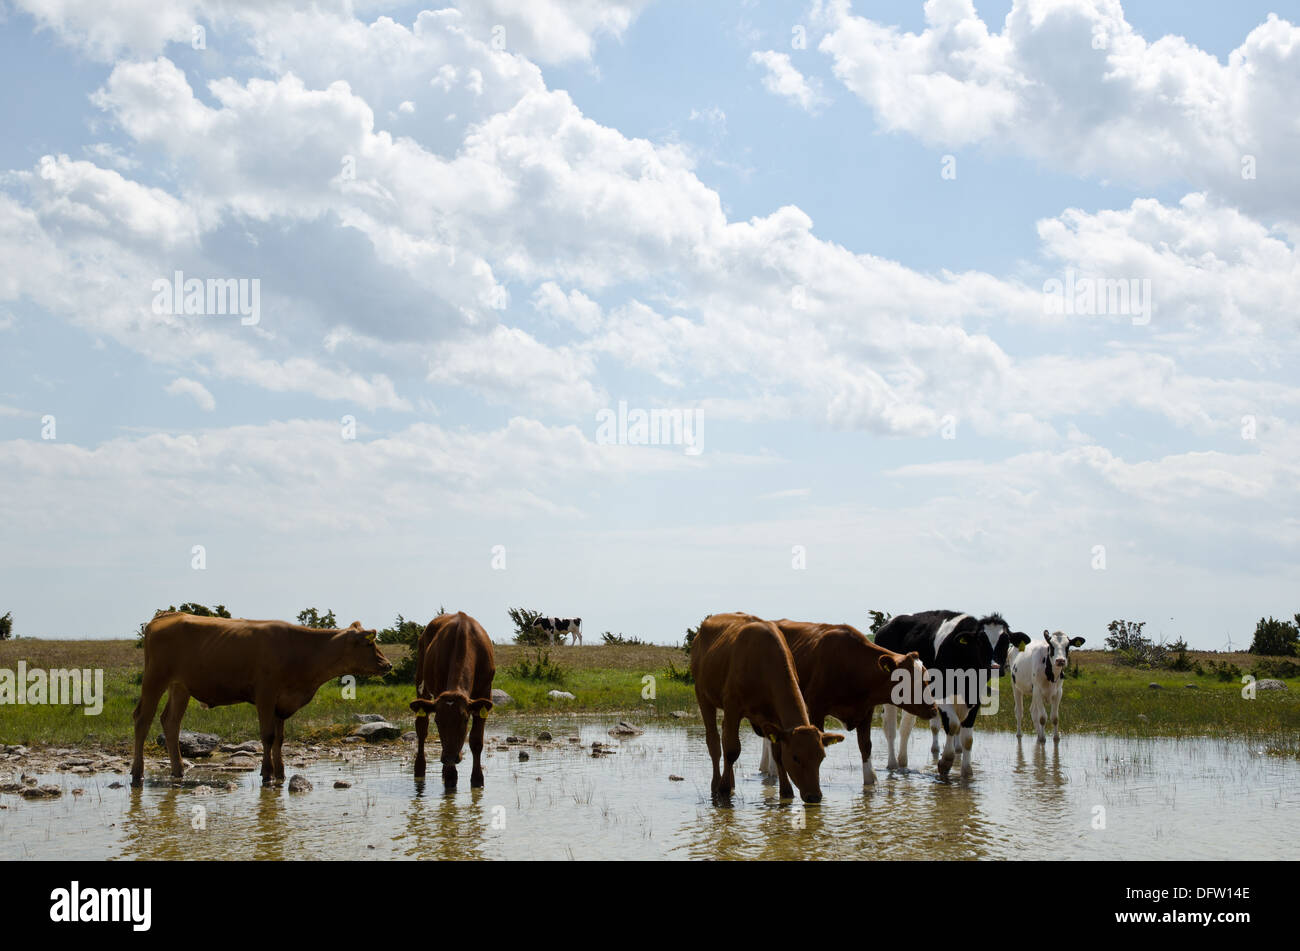 Cattle at water hole - Stock Image